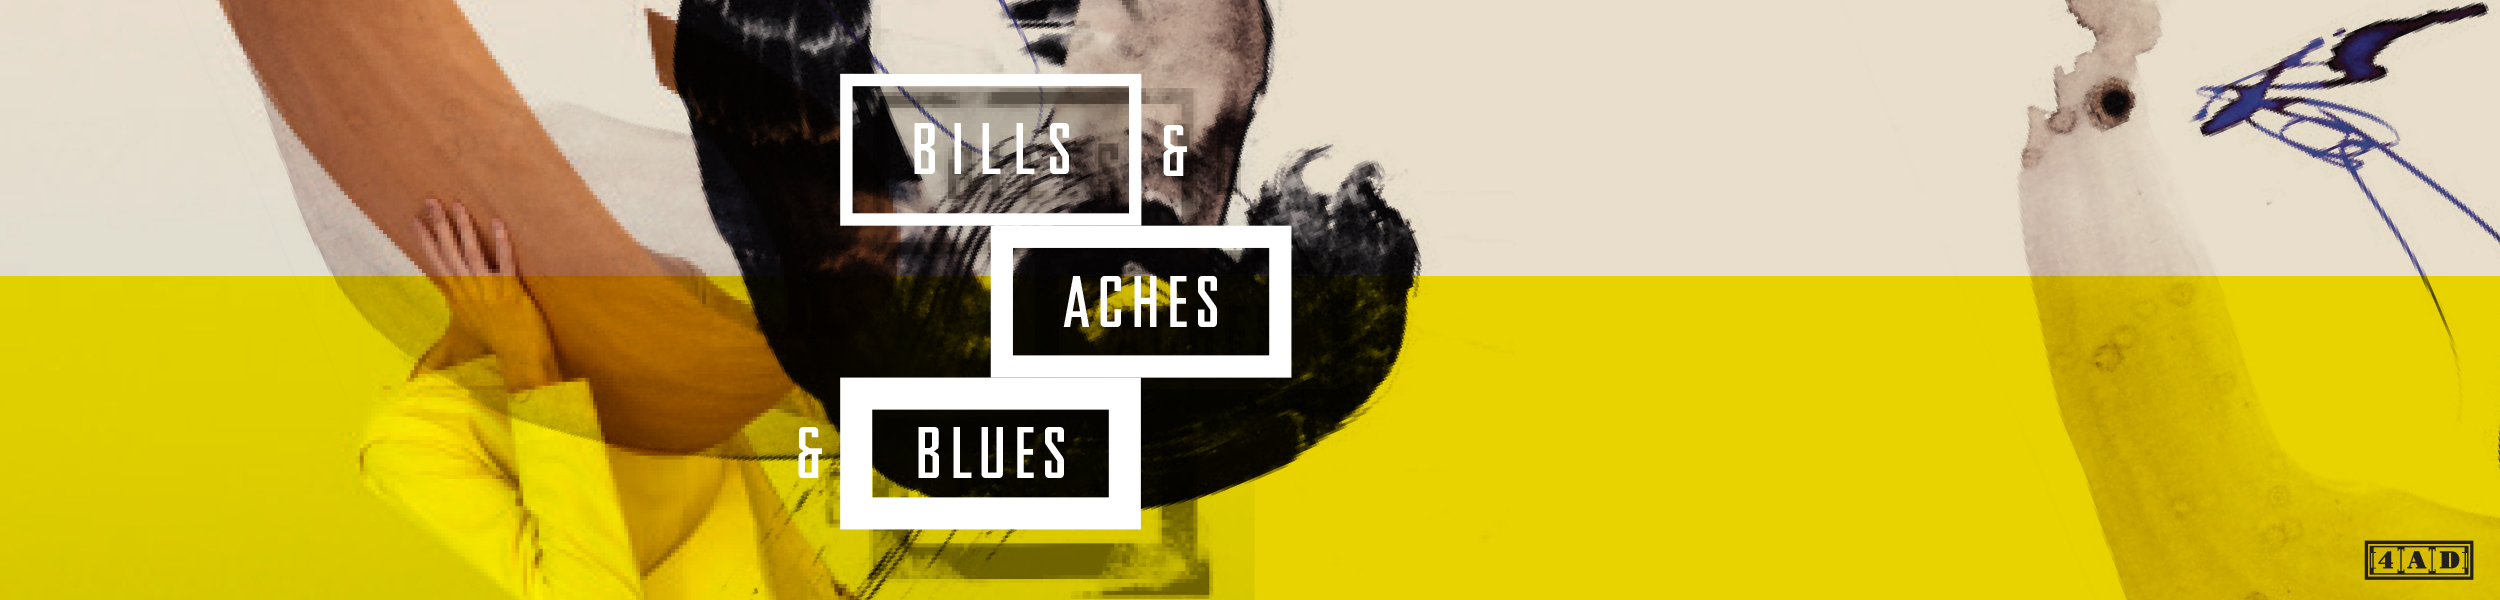 4AD - Final Four 'Bills & Aches & Blues' Tracks Out Now